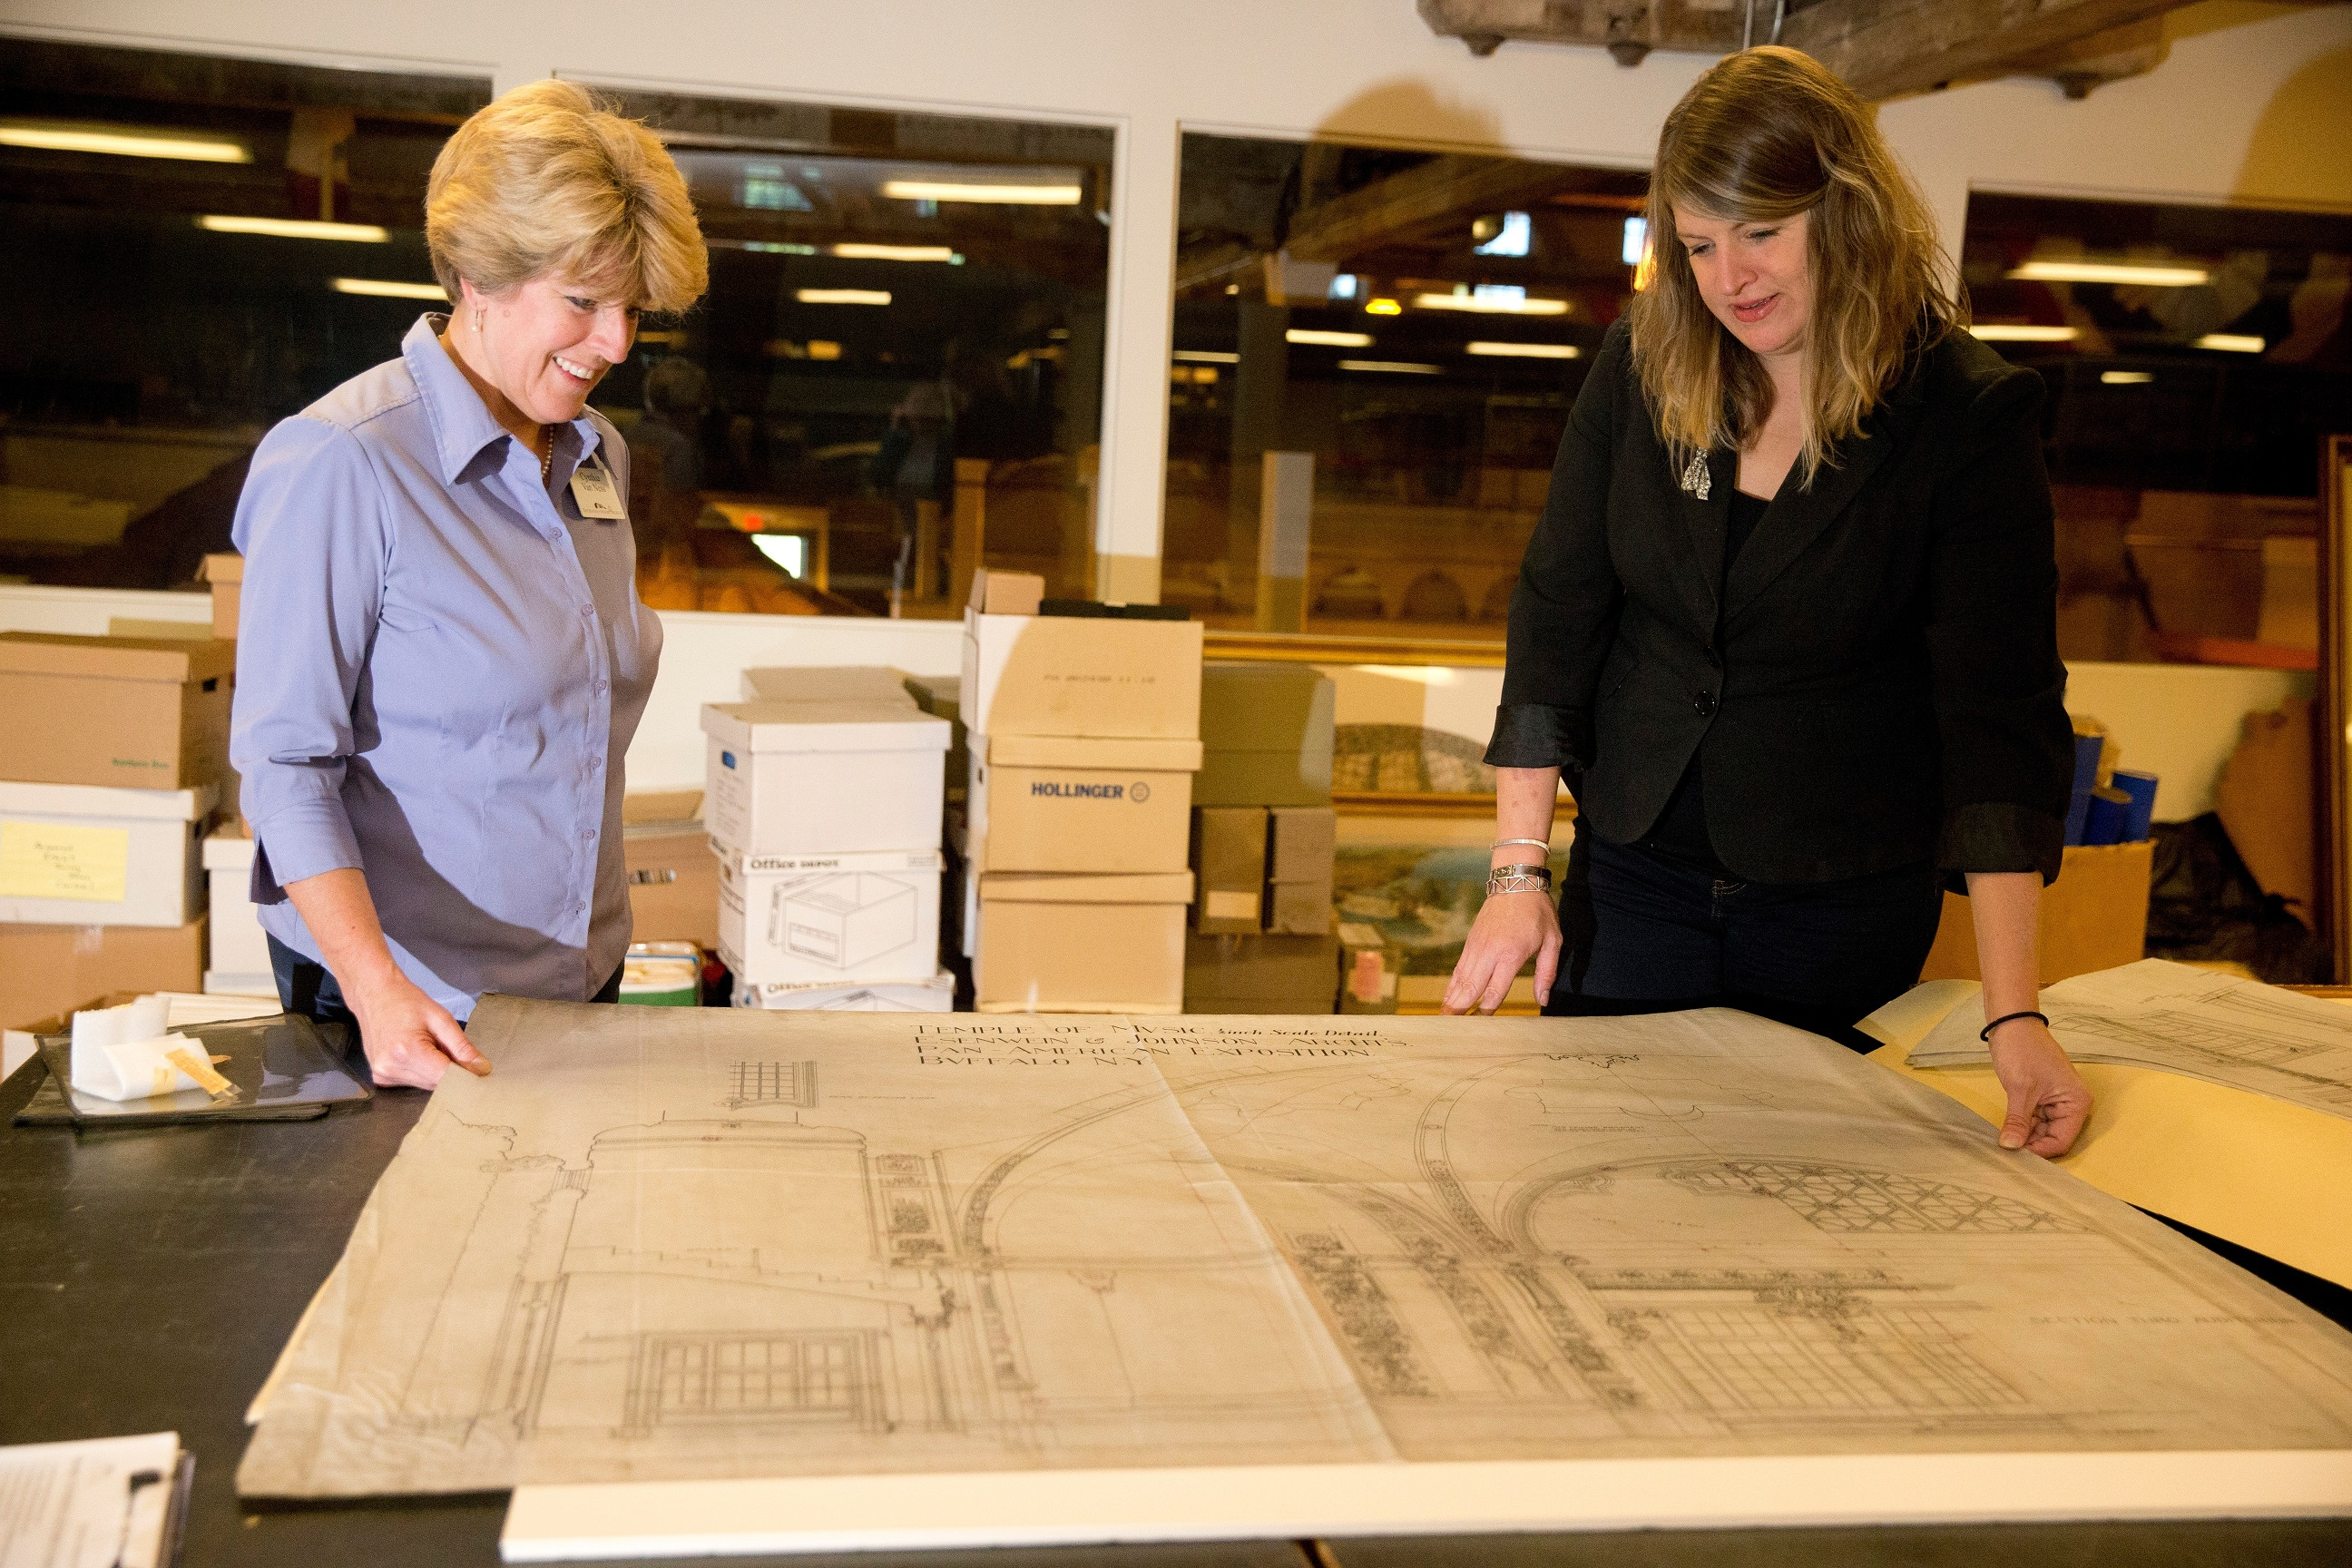 Cynthia Van Ness, director of library and archives, left, and Melissa Brown, executive director of the Buffalo History Museum, look at wax linen prints of the Temple of Music dome from the Pan-American Exposition at the Buffalo History Museum, Resource Center, in Buffalo, on Thursday, Sept. 15, 2016.  (John Hickey/Buffalo News)